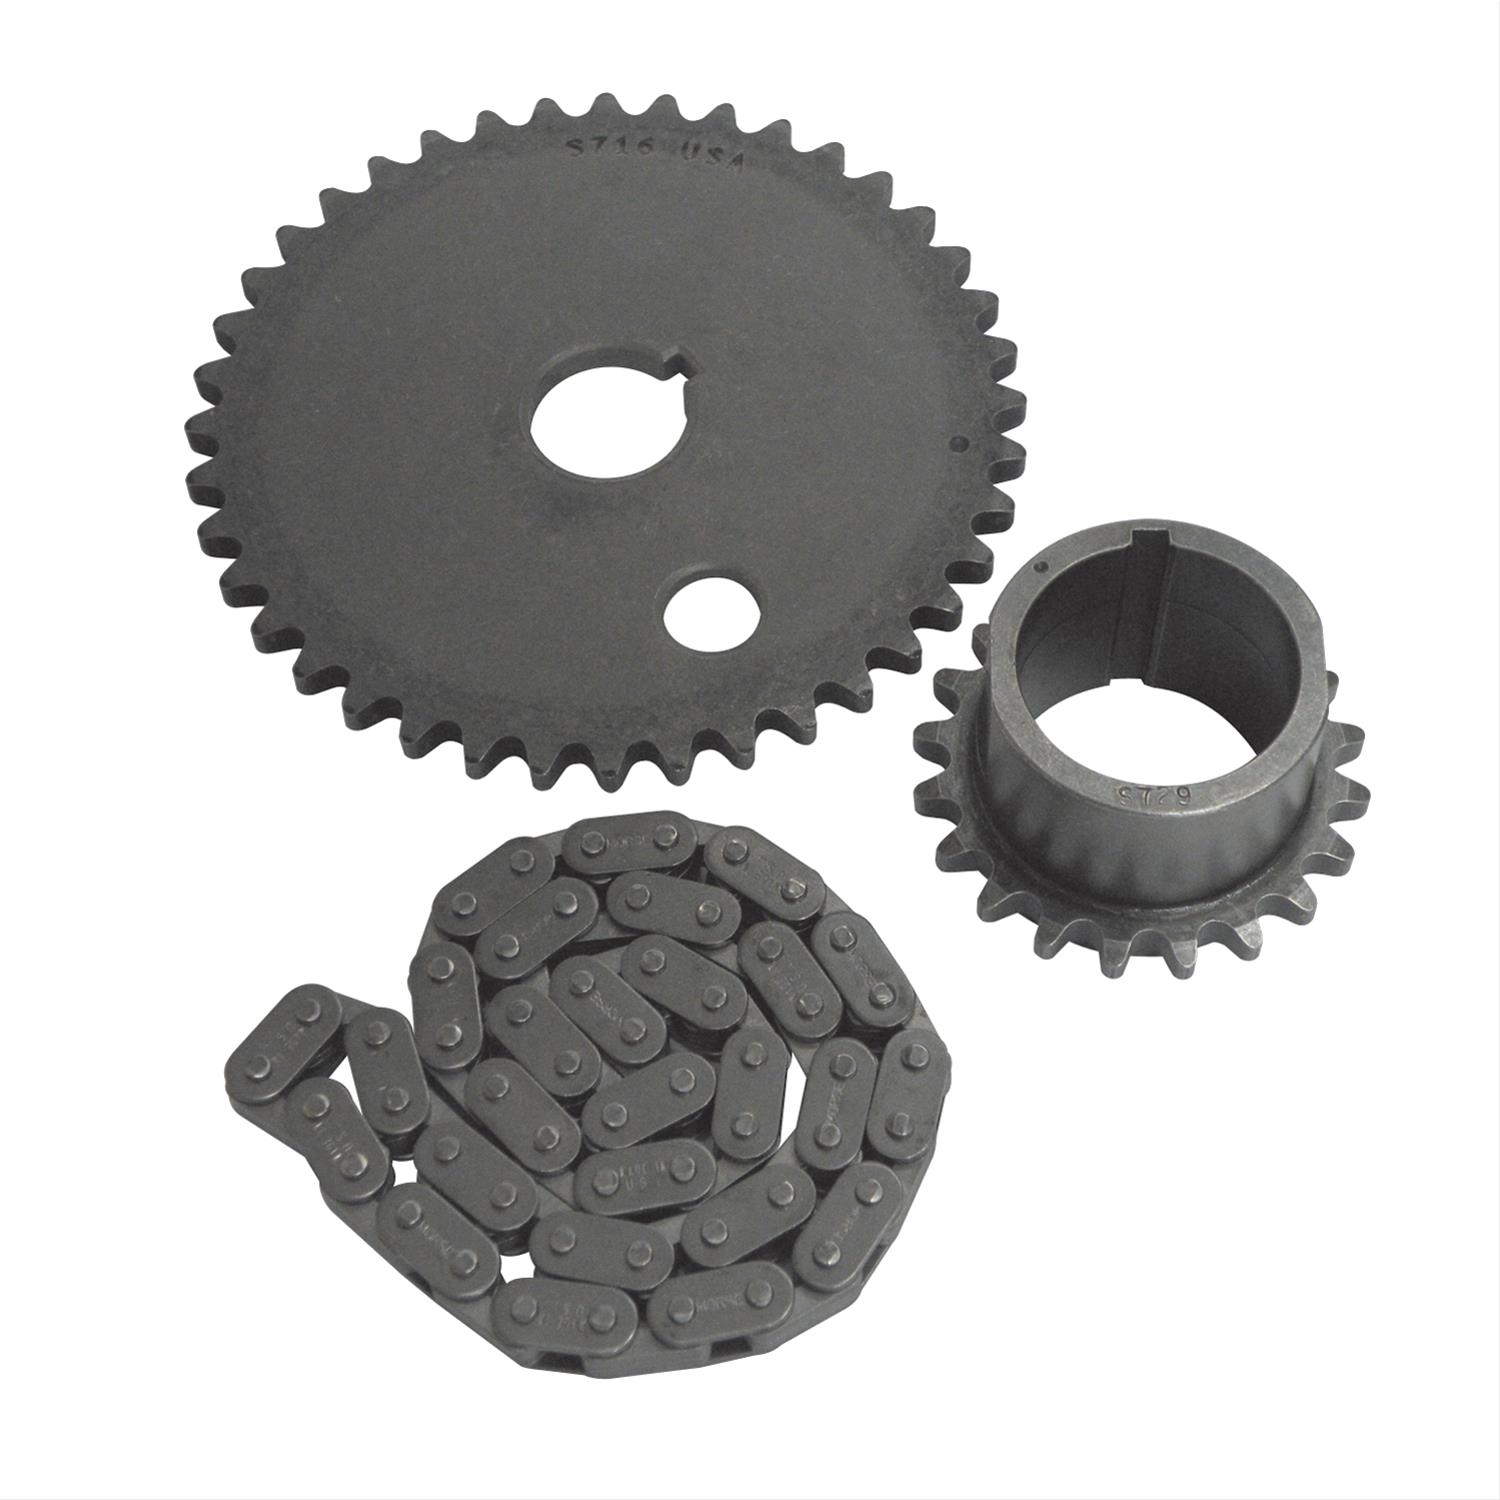 Melling 3-375S Timing Chain Set